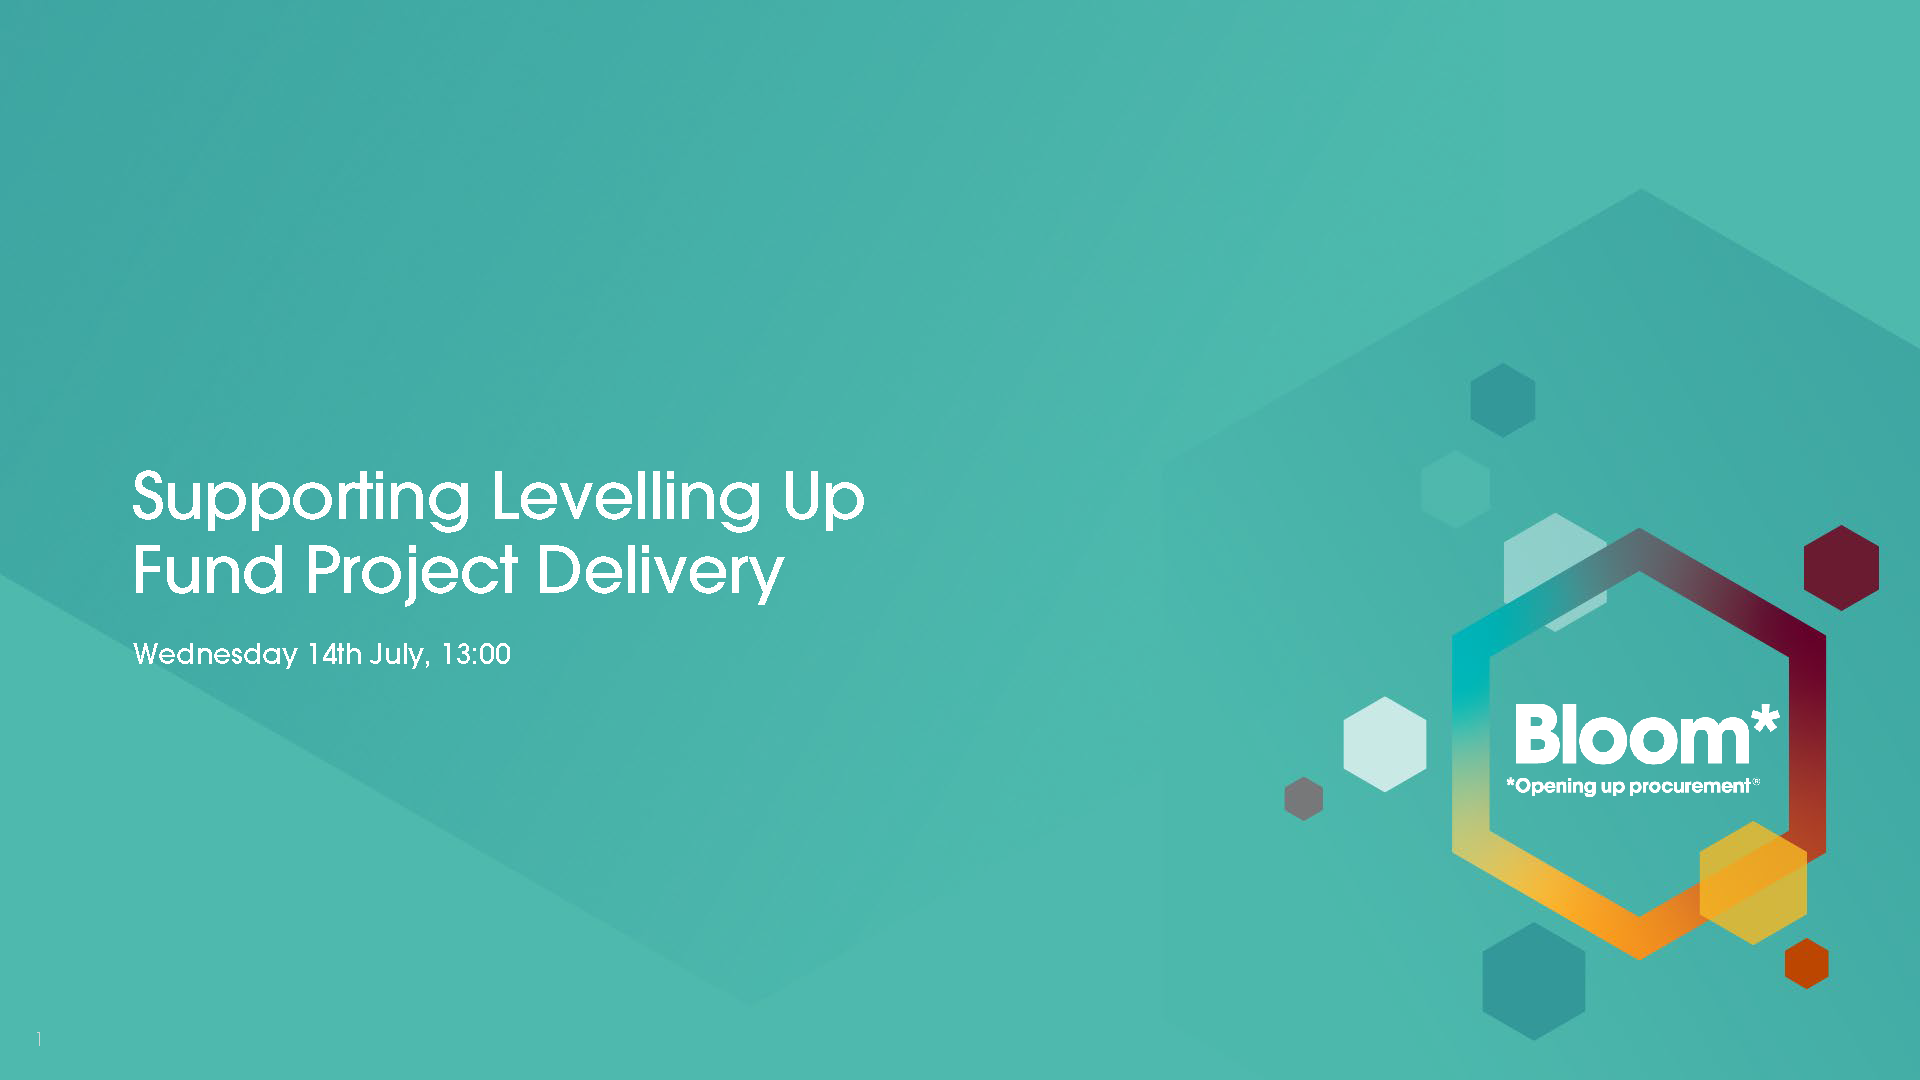 Supporting Levelling Up Fund Project Delivery